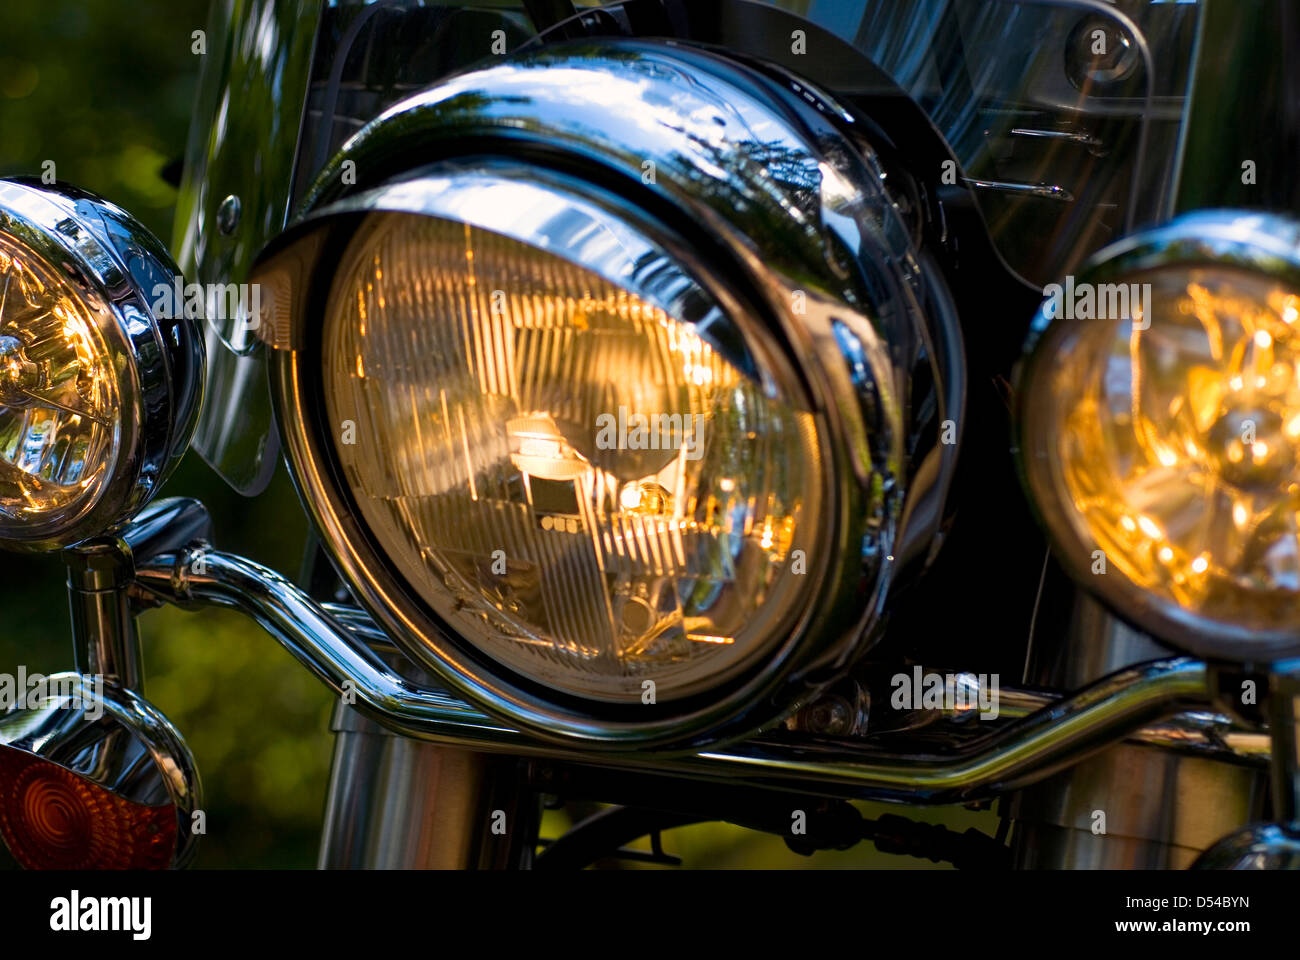 Close-up of motorcycle lights, shallow dof, focus on left-turn signal - Stock Image